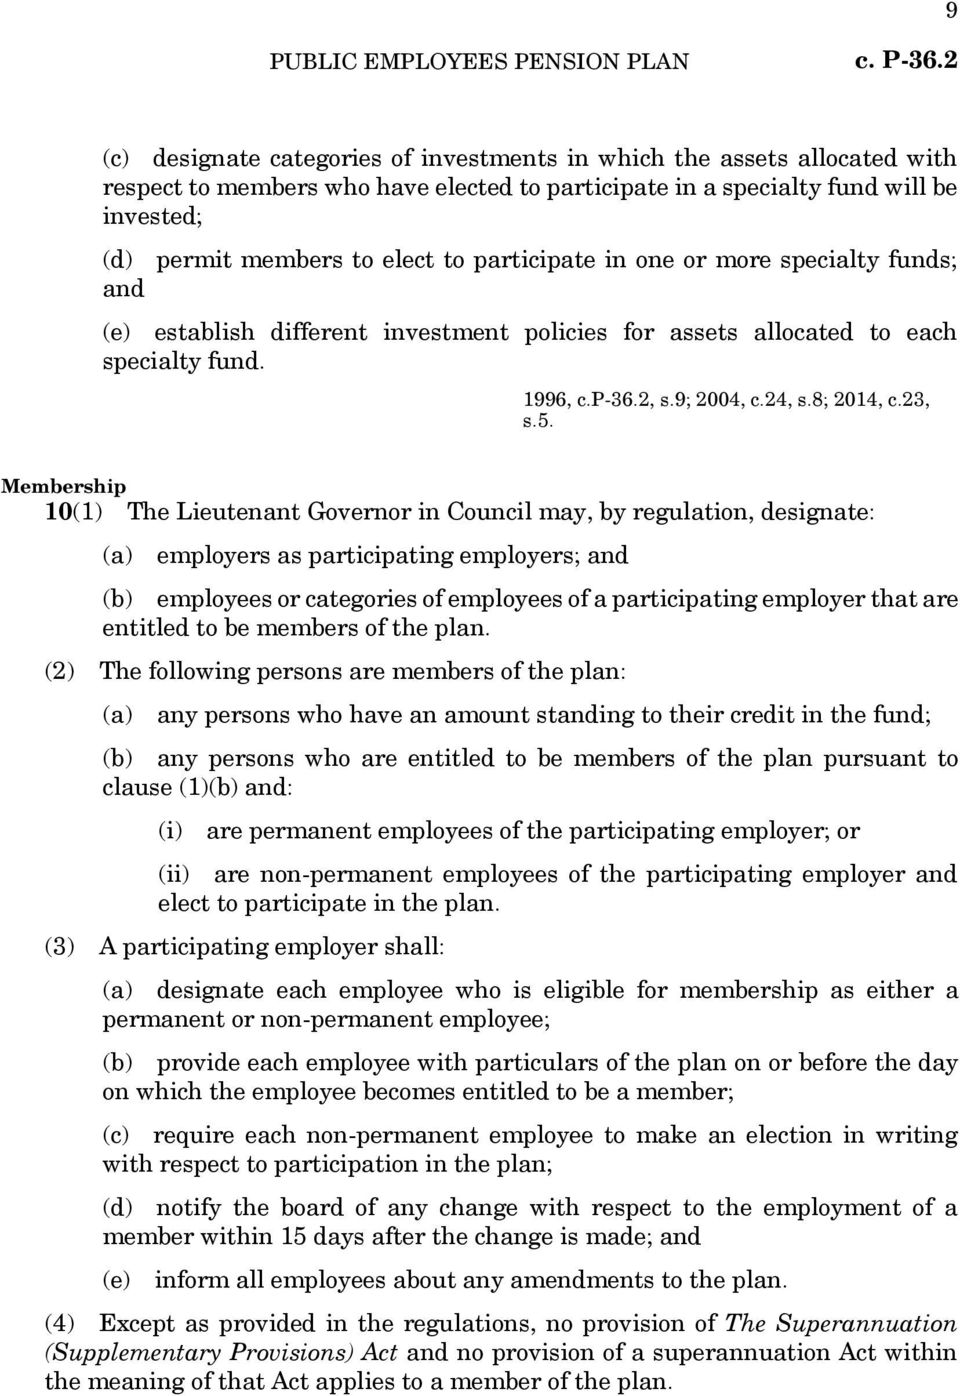 Membership 10(1) The Lieutenant Governor in Council may, by regulation, designate: (a) employers as participating employers; and (b) employees or categories of employees of a participating employer